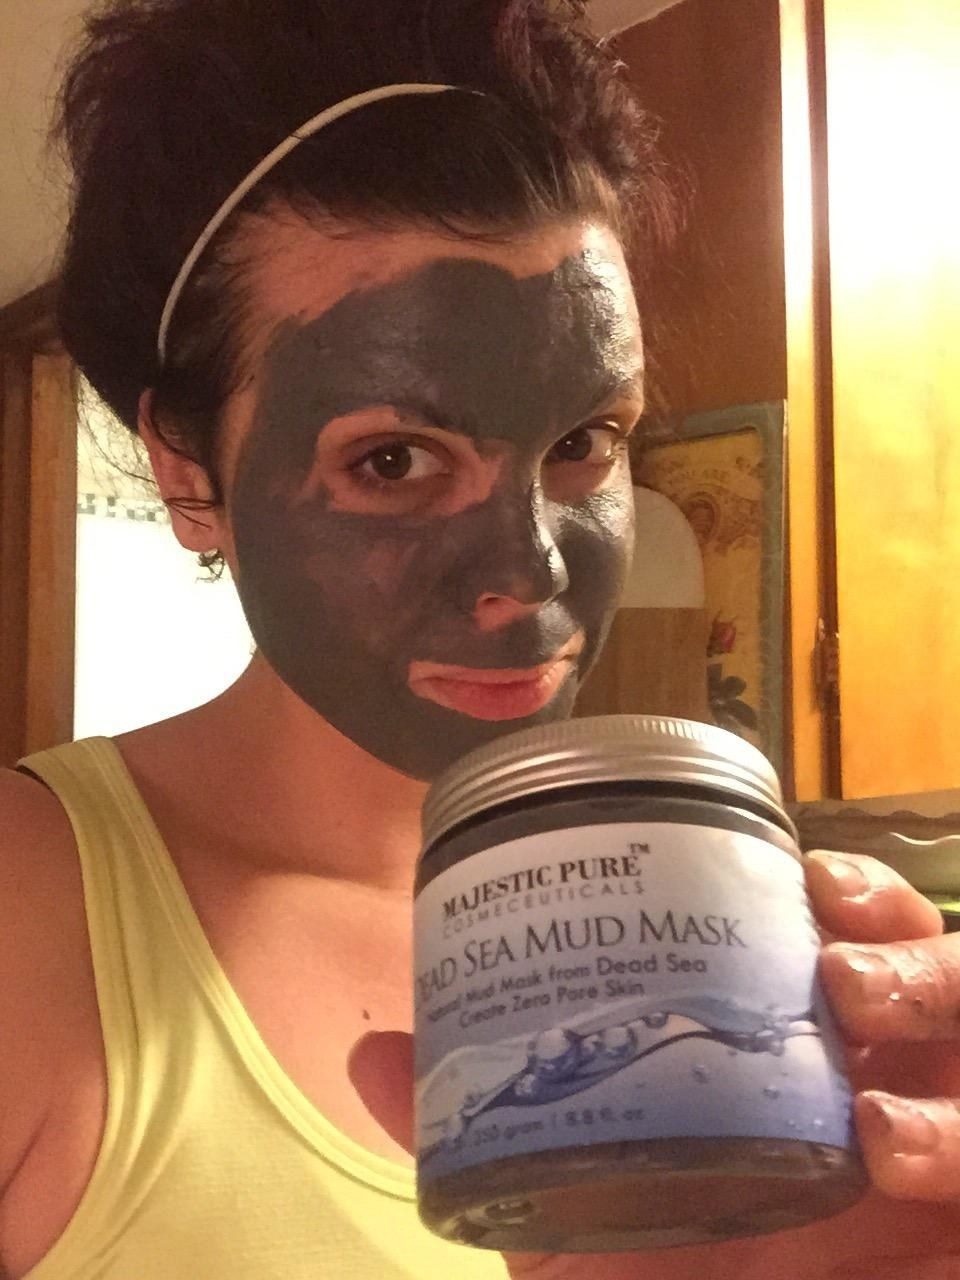 Reviewer wears dark gray dead sea mud mask on their face